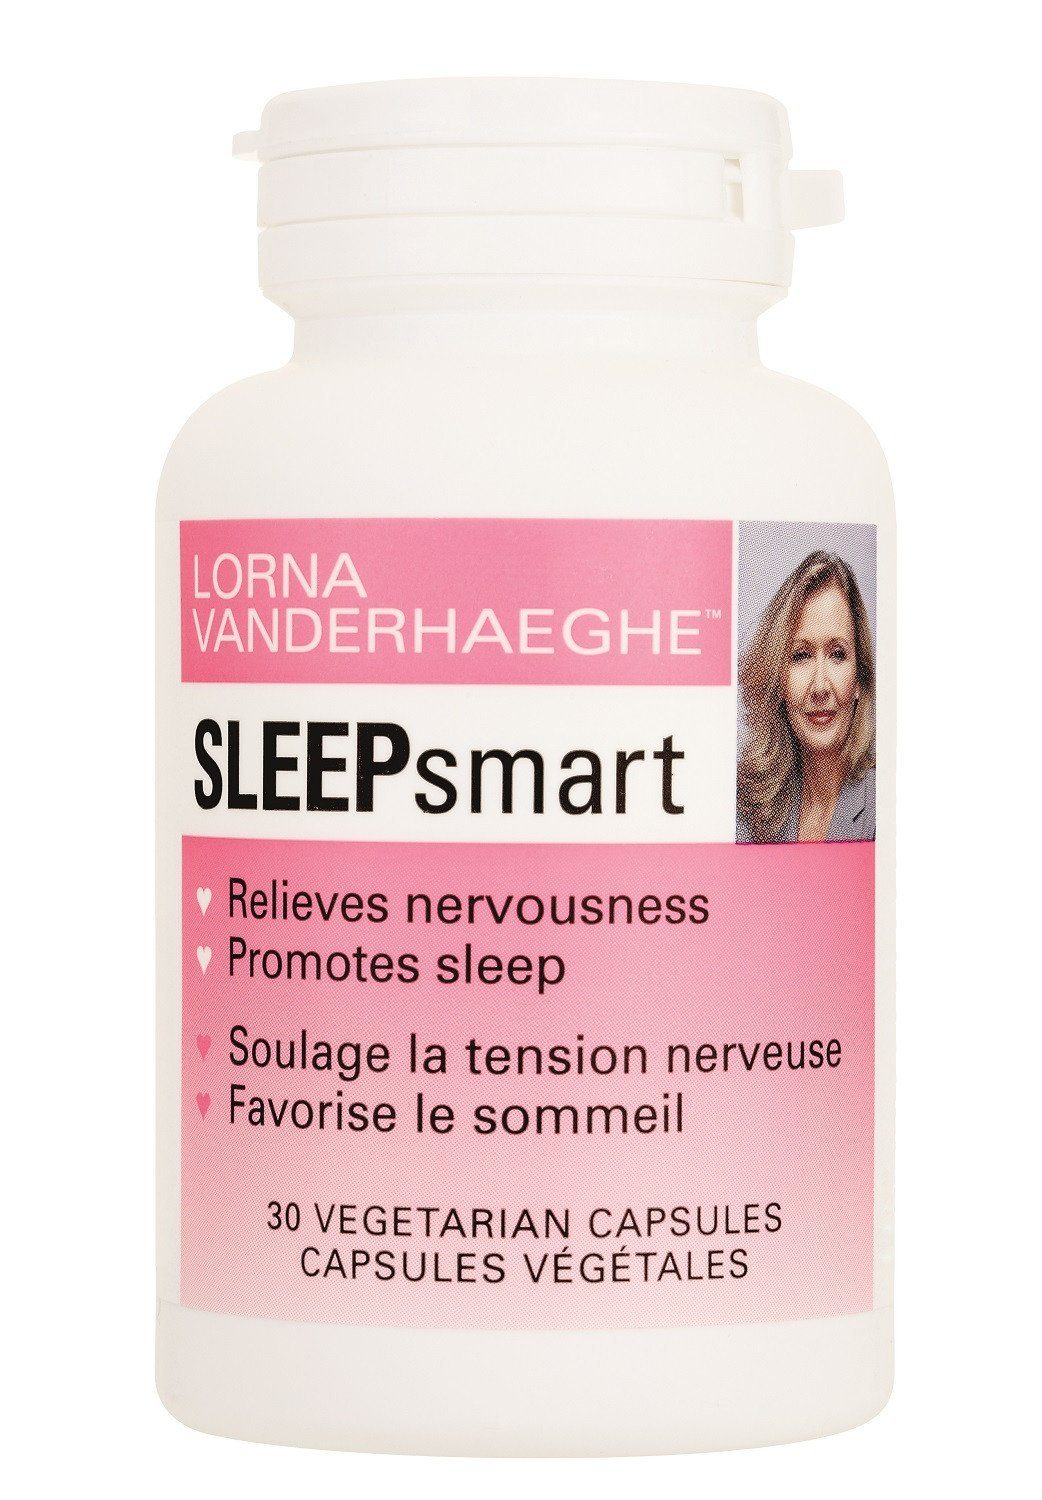 Supplements & Vitamins - Lorna Vanderhaeghe - SLEEPsmart, 30 Vegetarian Capsules